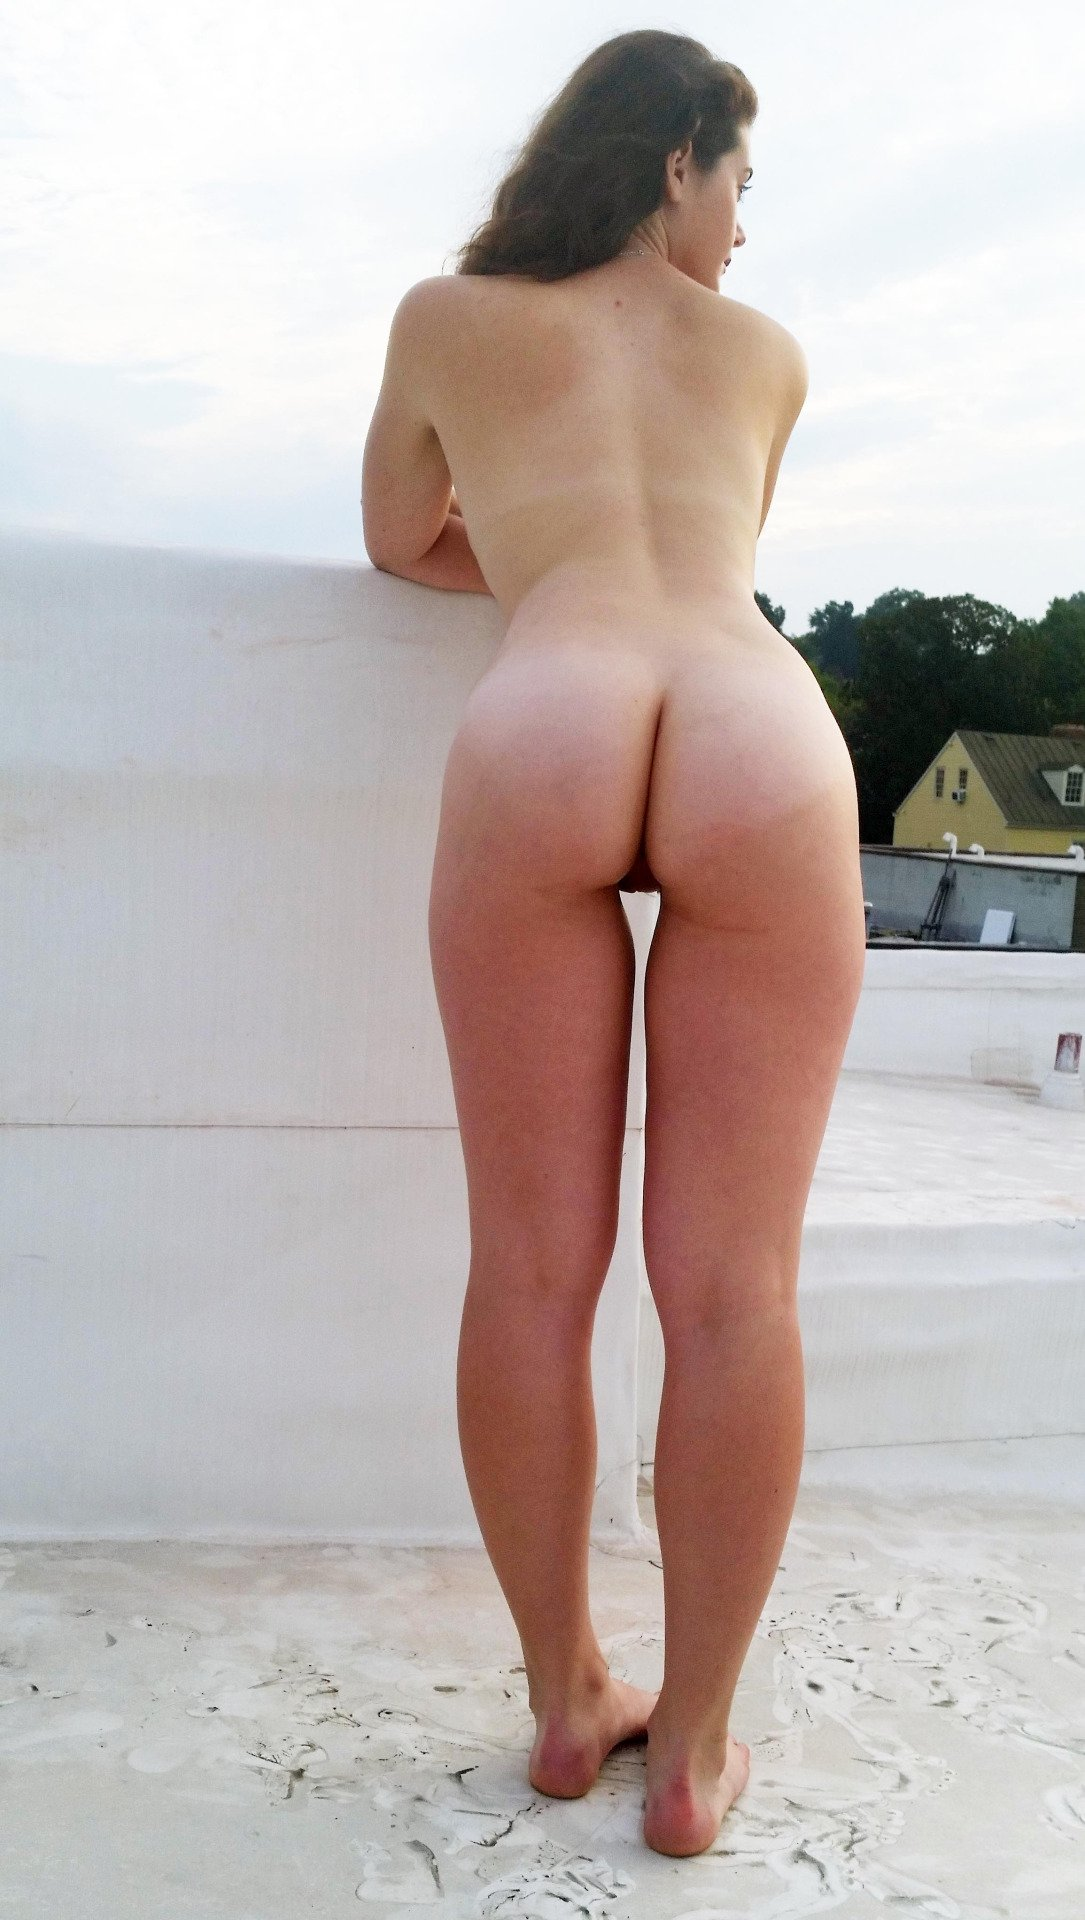 Old women at nude beach #17